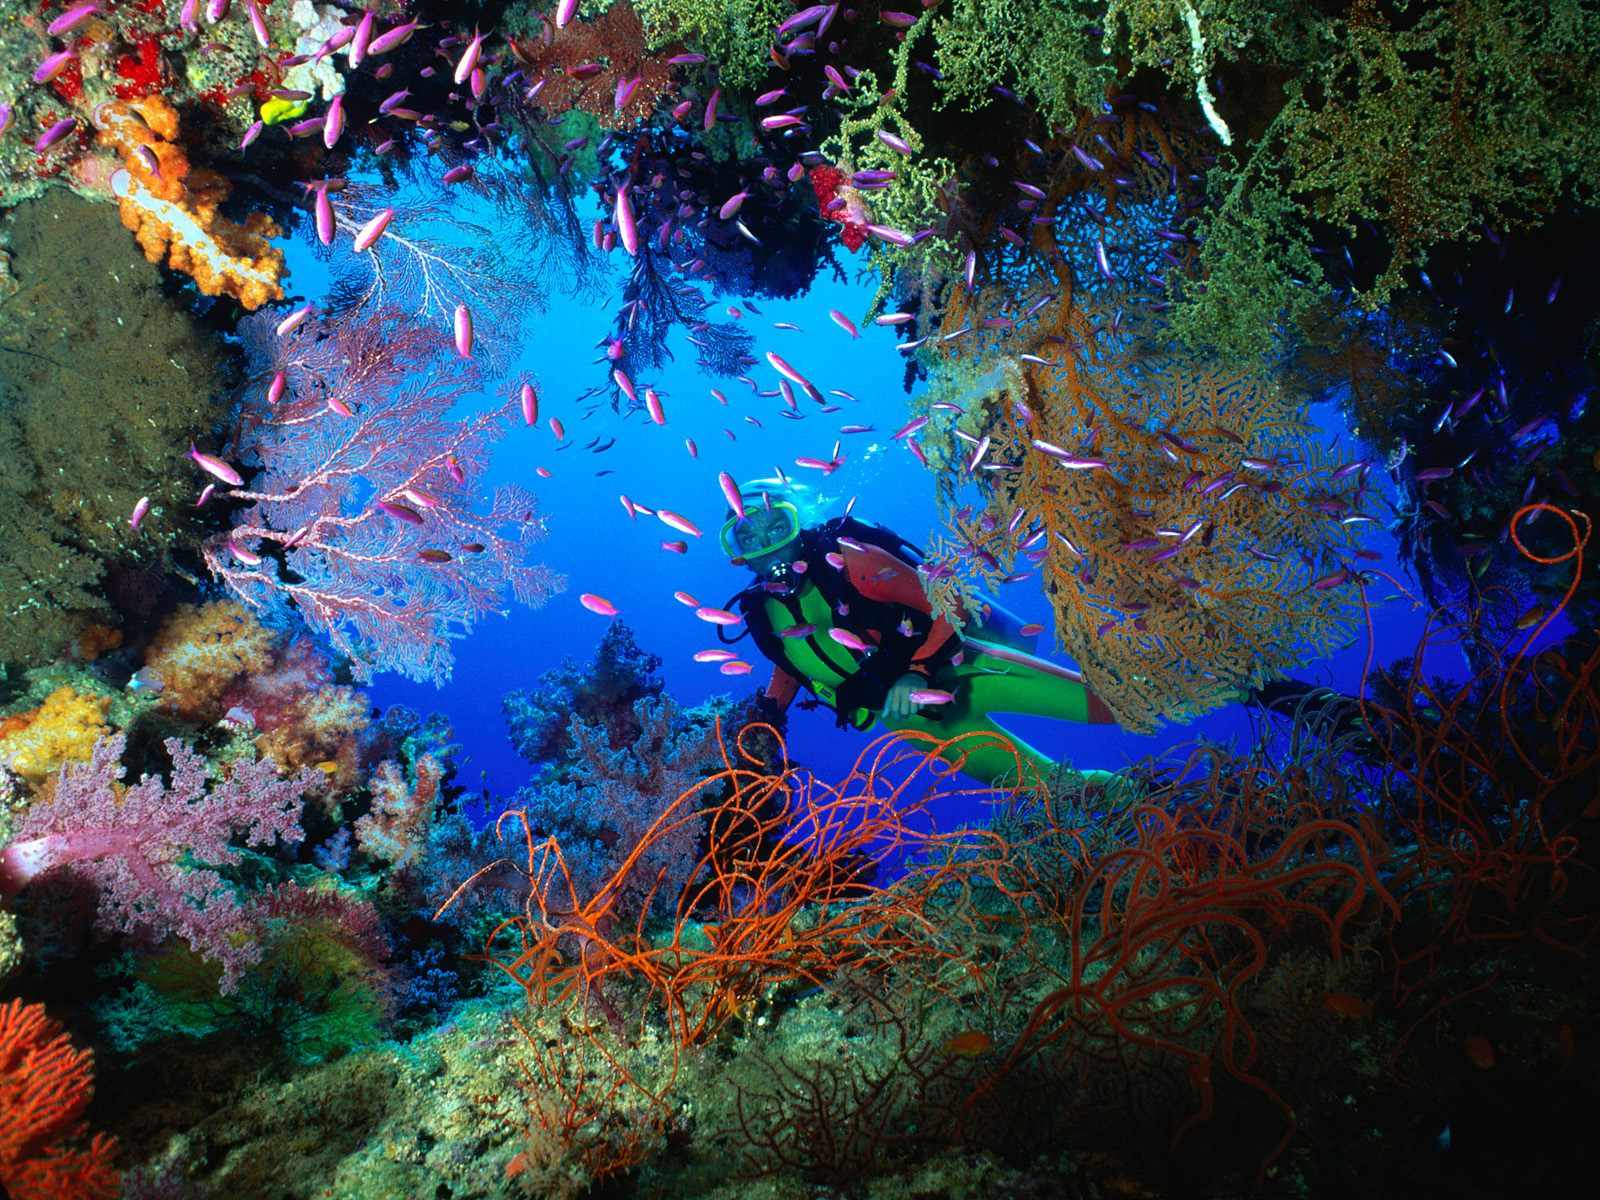 soft-coral-embellished-cave-fiji-pictures-underwater-photos.jpg